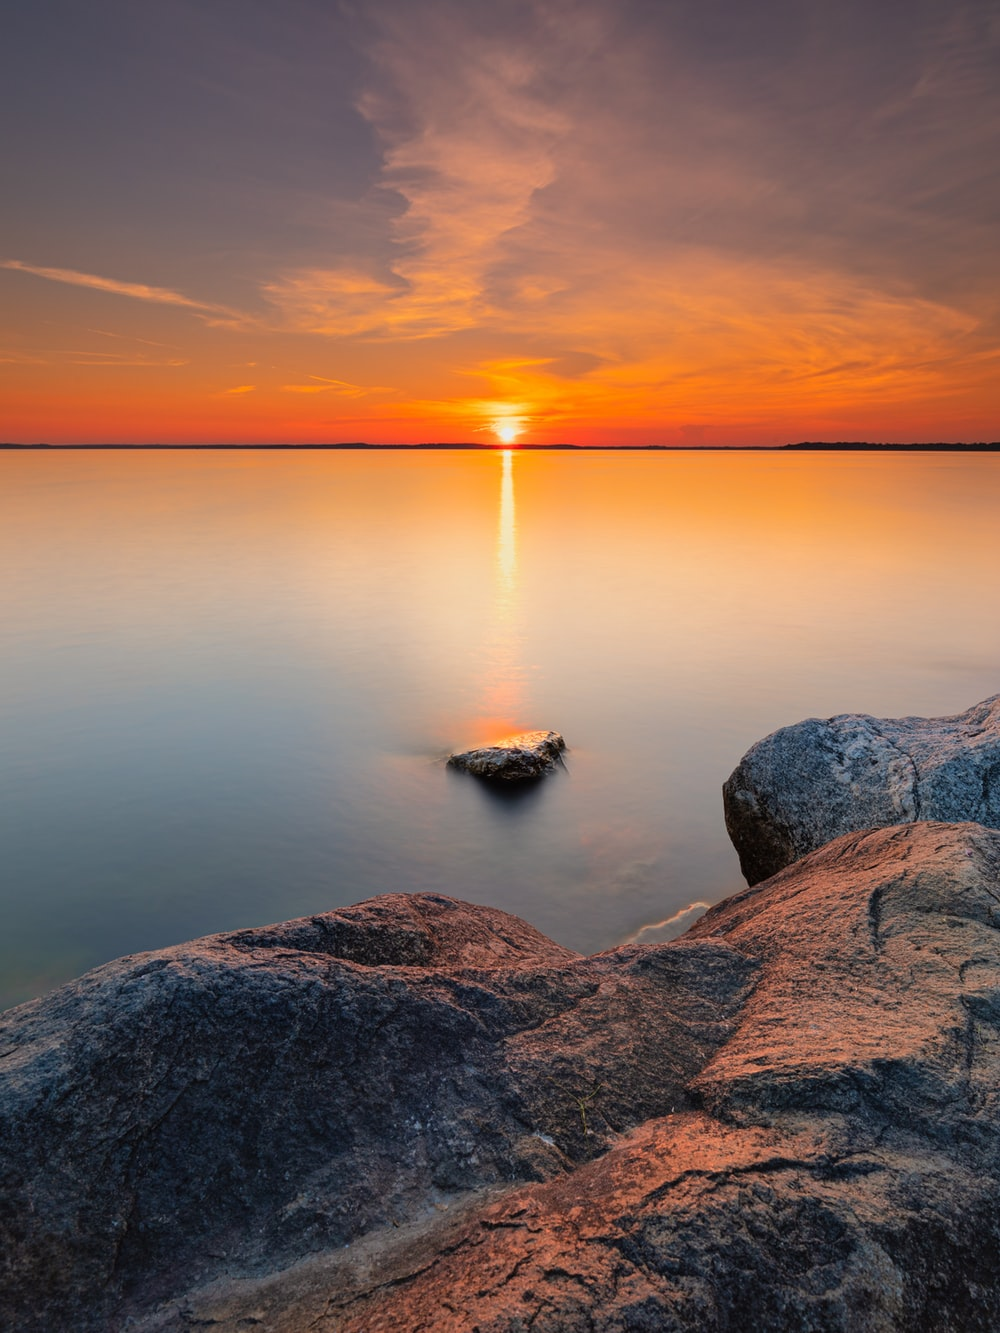 gray rock formation near body of water during sunset